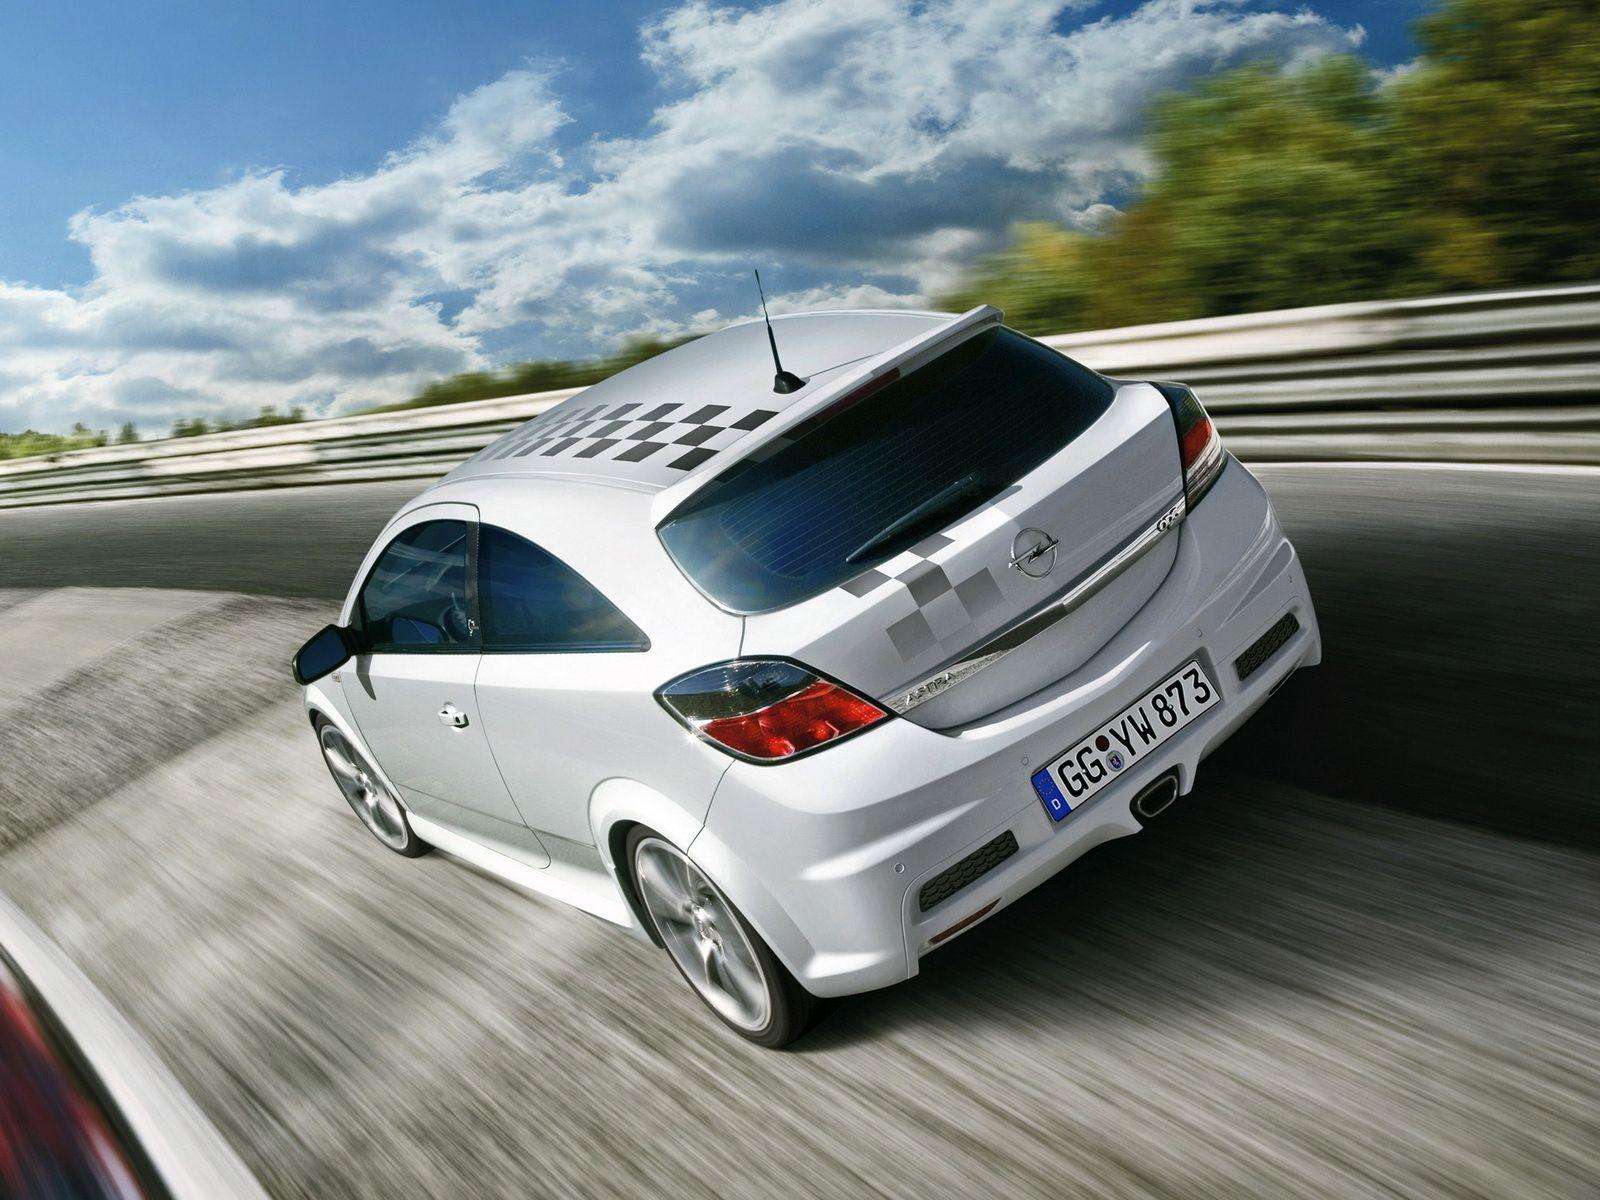 Opel Astra GTC wallpapers and image